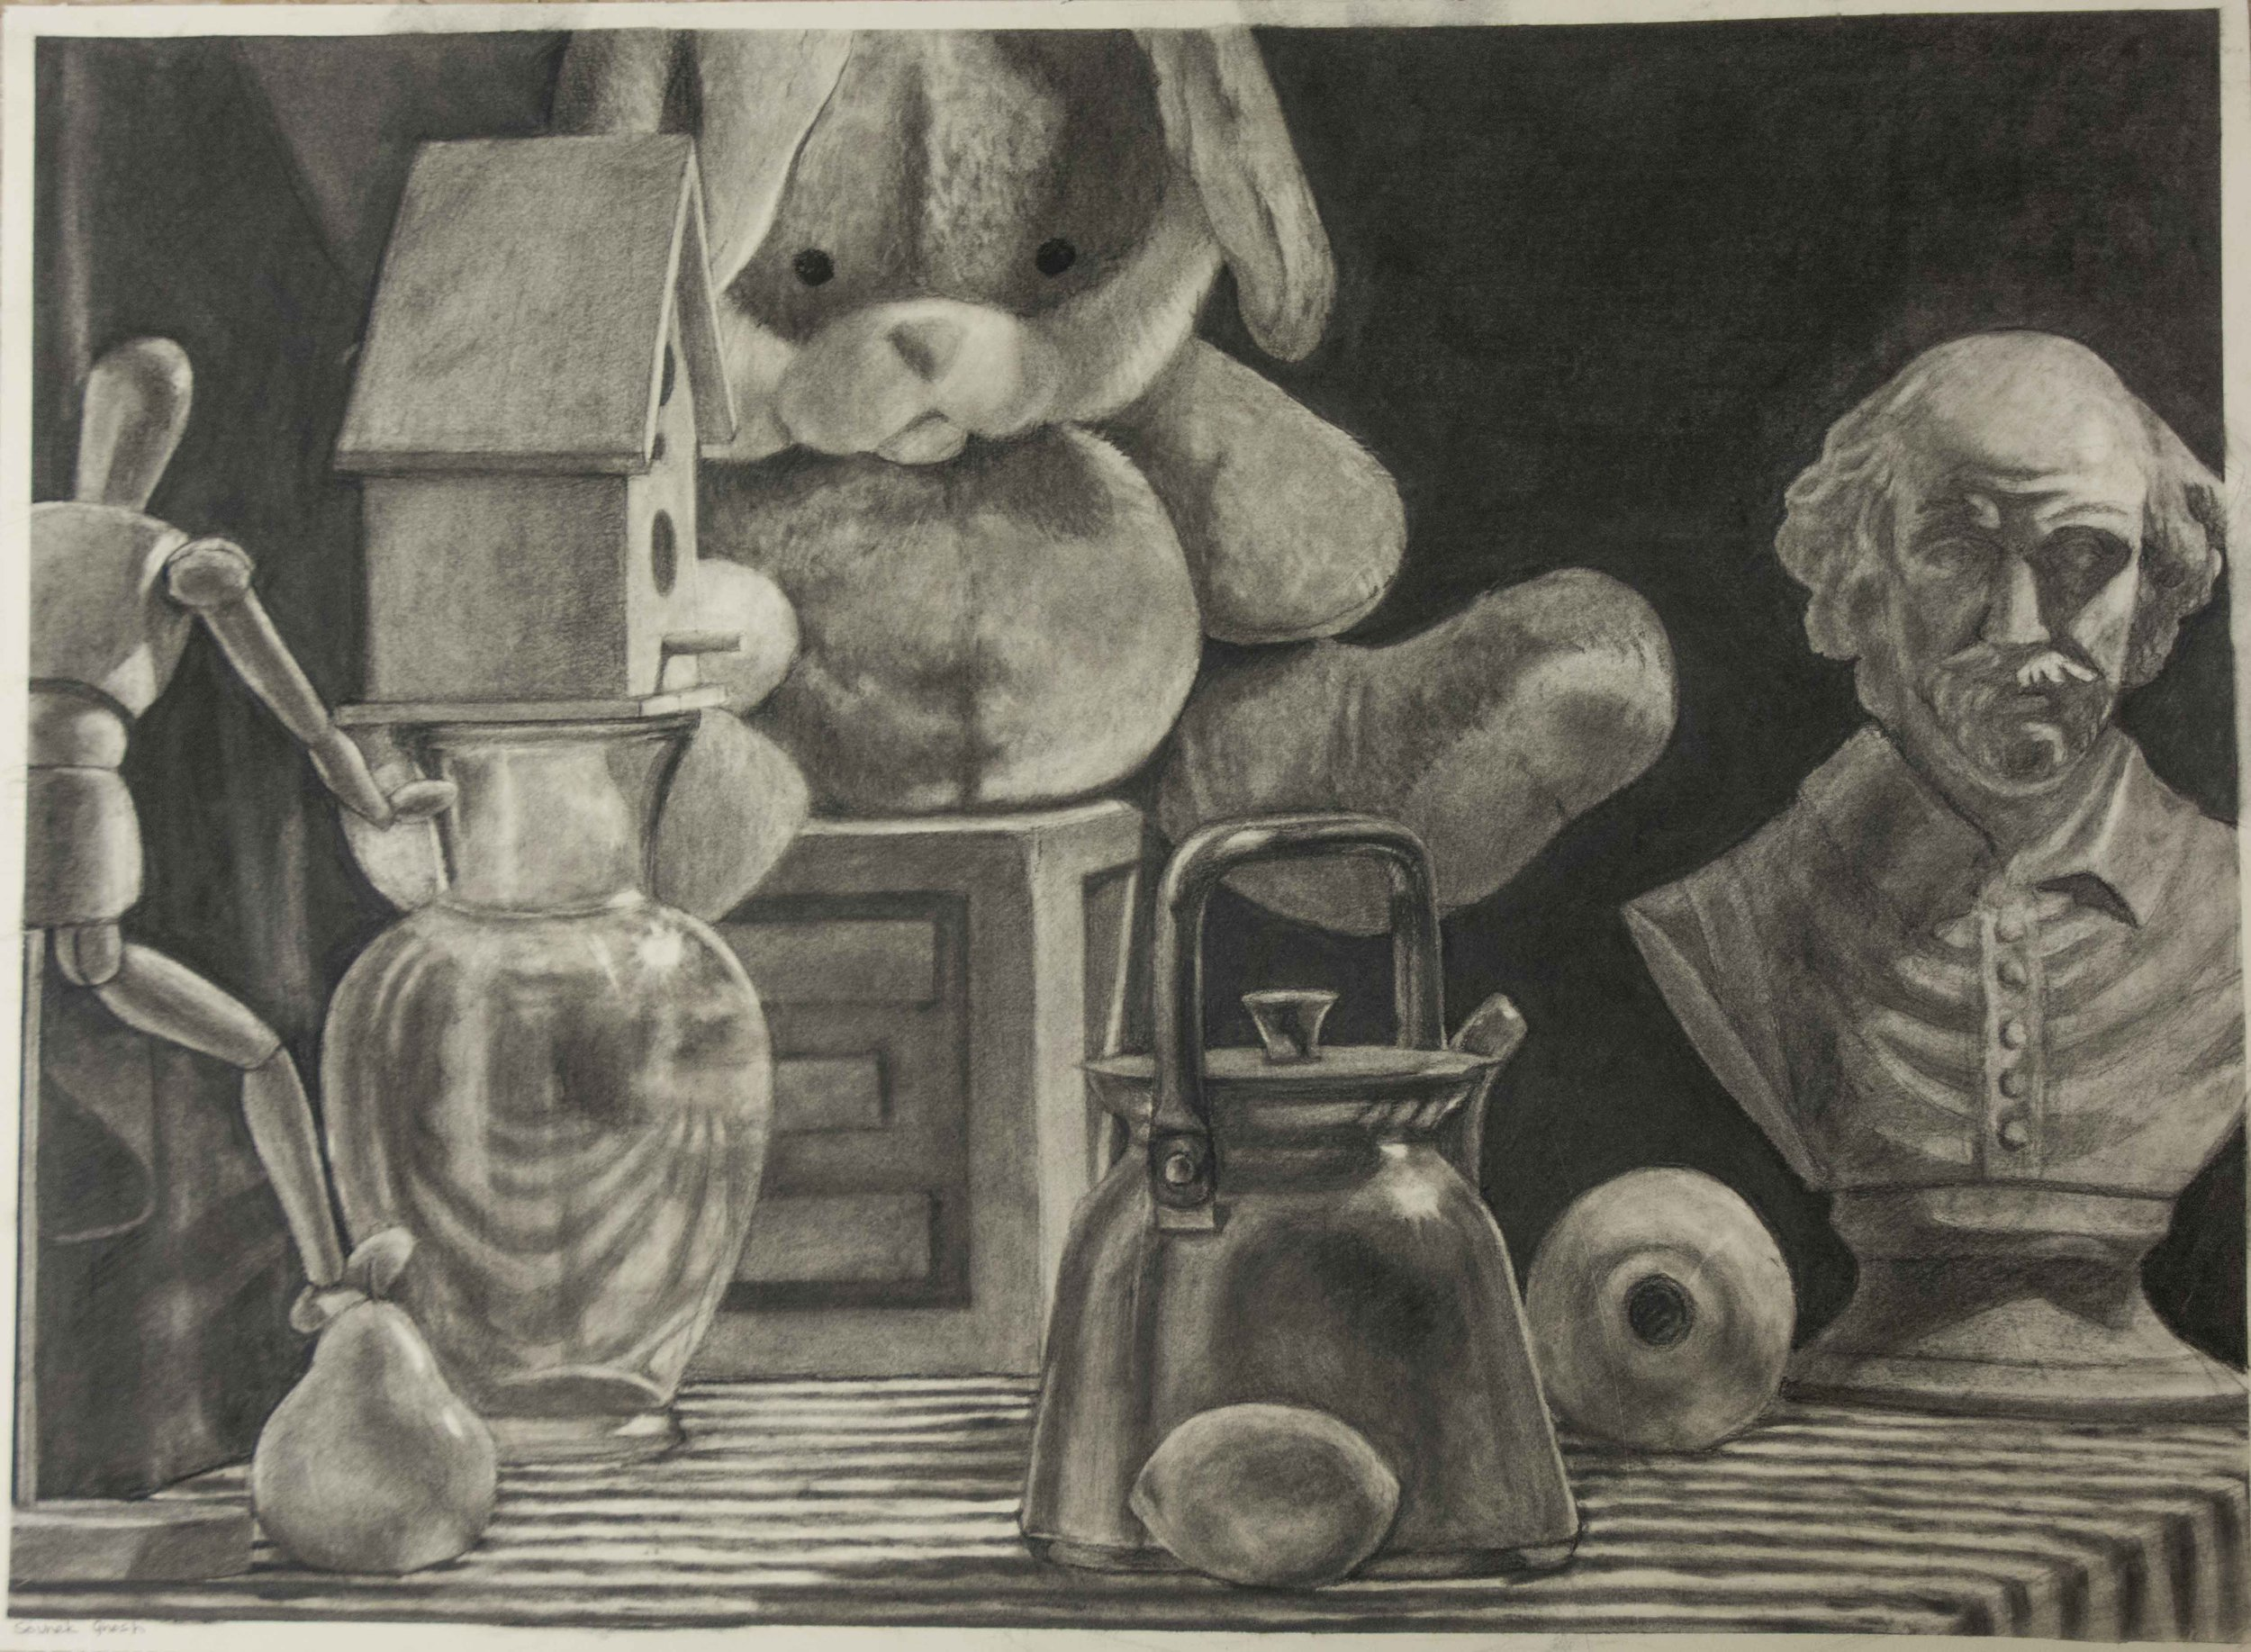 Still Life 30x22 inches using Charcoal